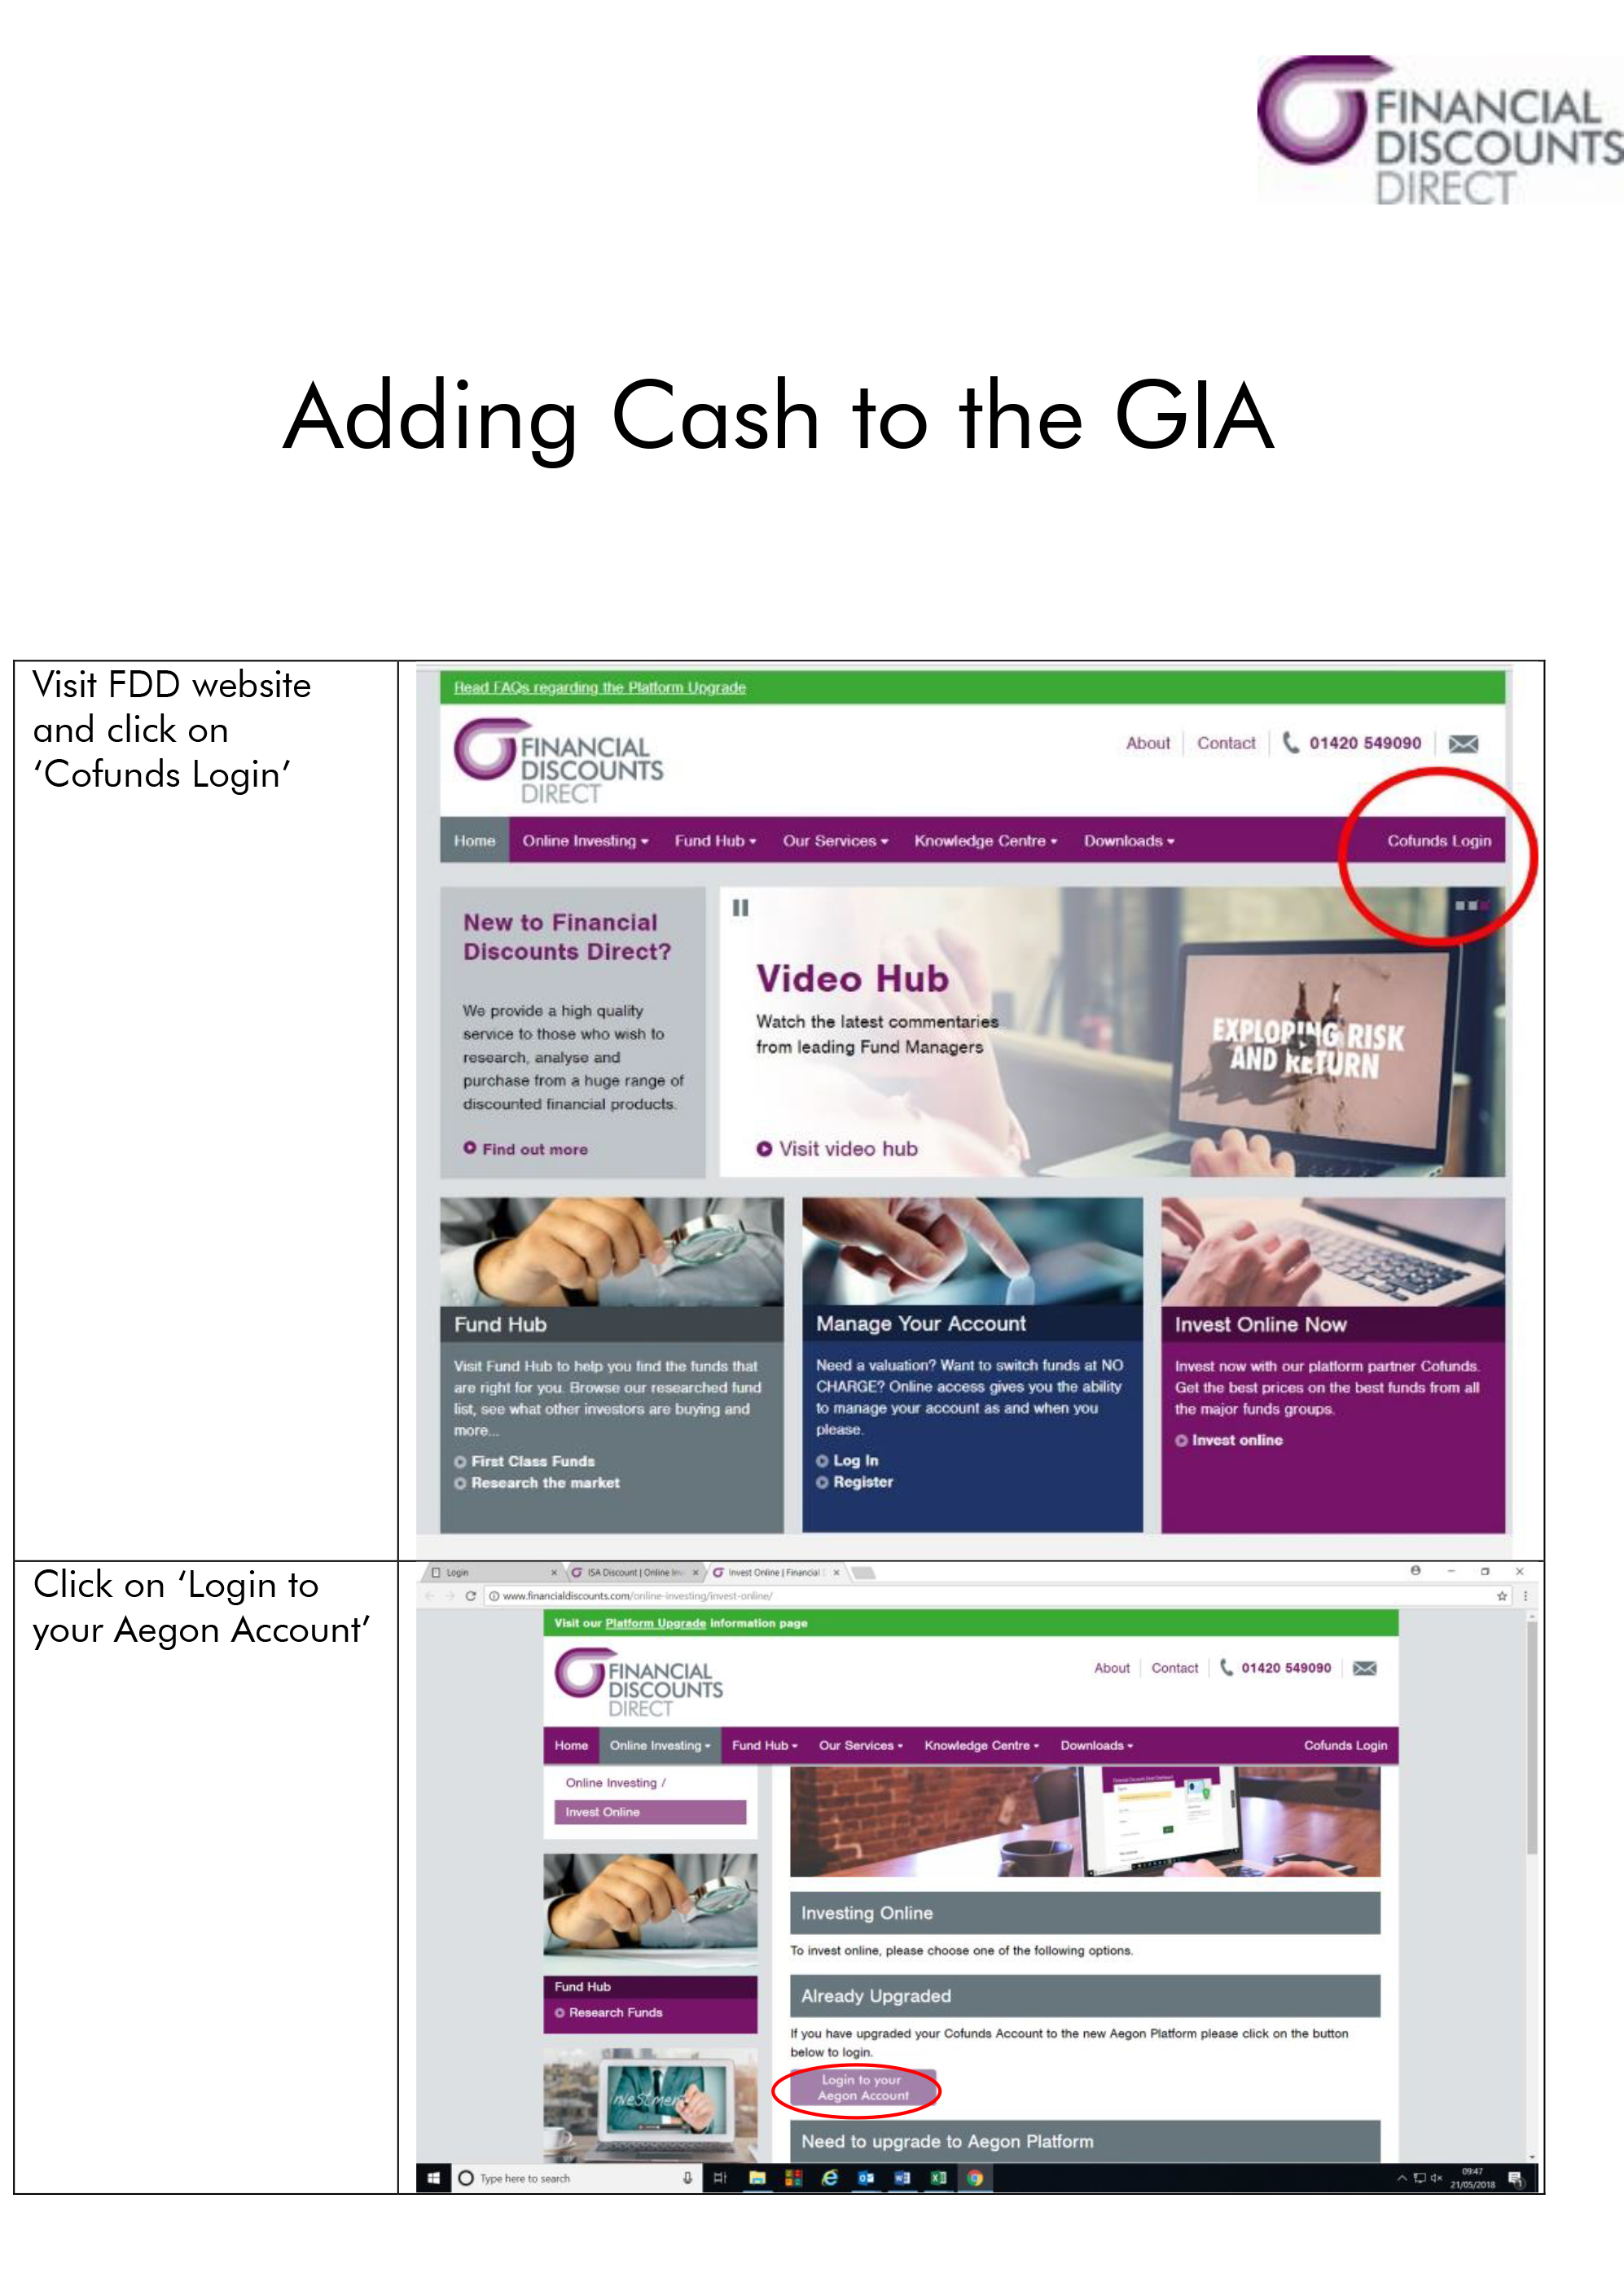 Adding Cash to your GIA